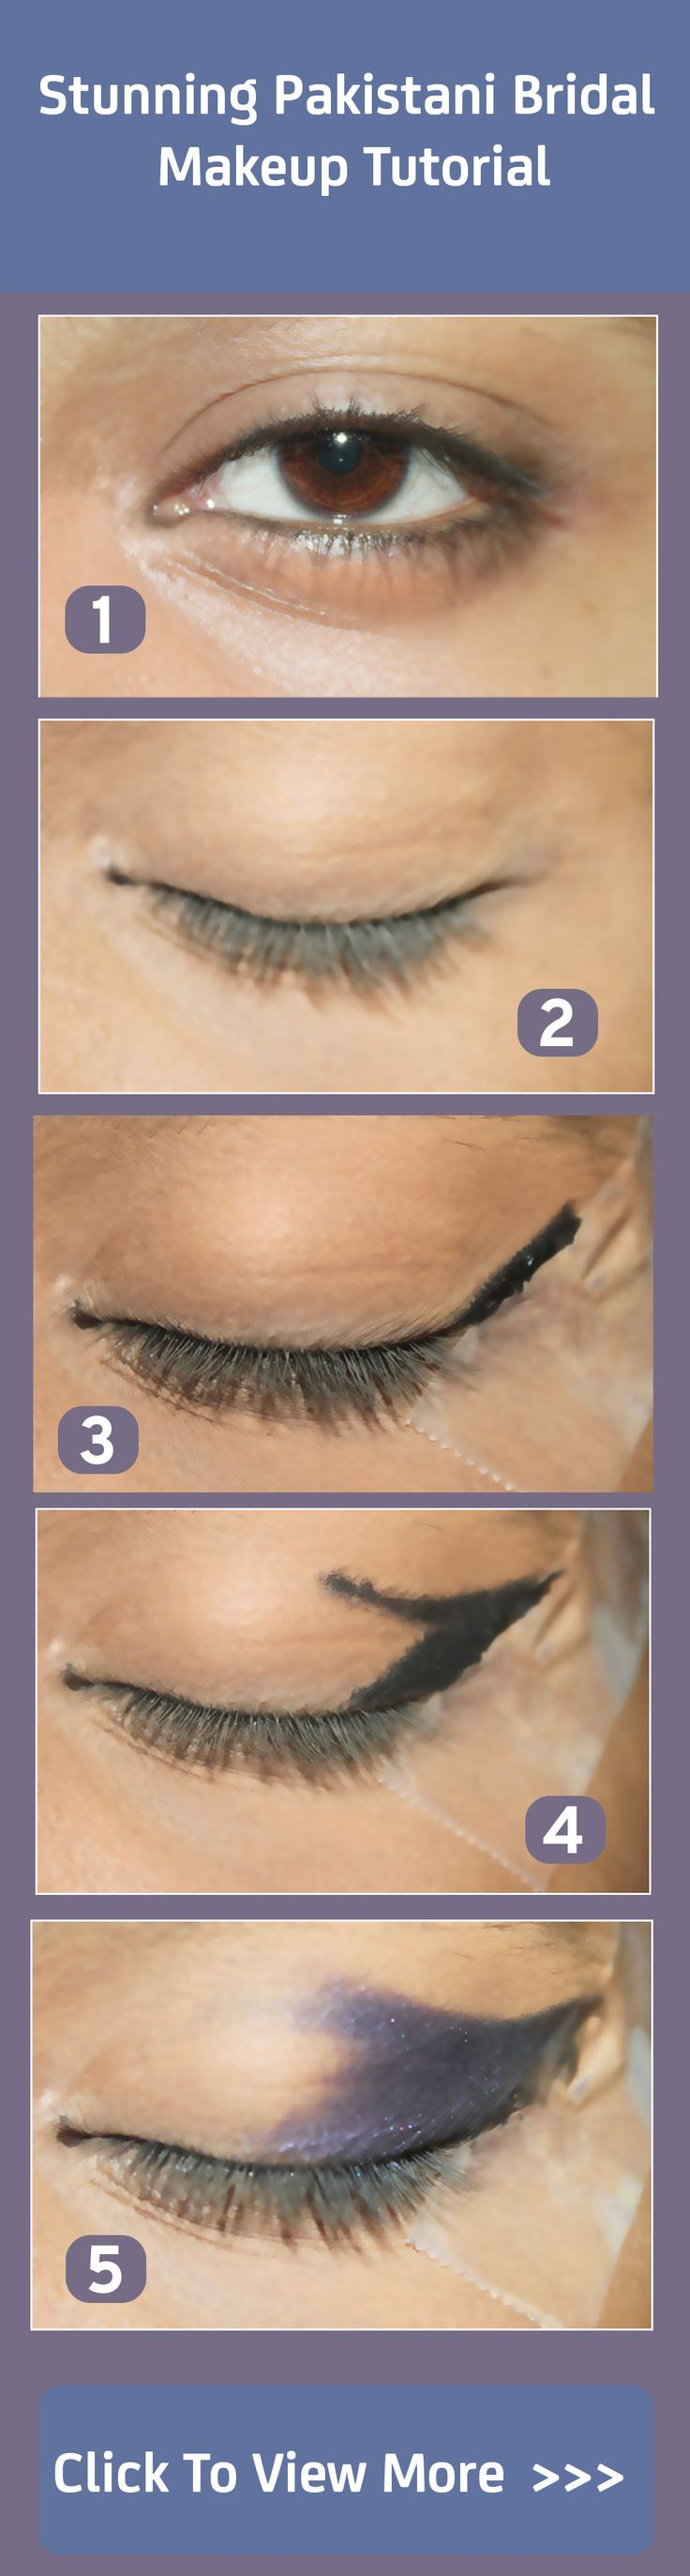 Stunning Pakistani Bridal Makeup – Step By Step Tutorial With Pictures